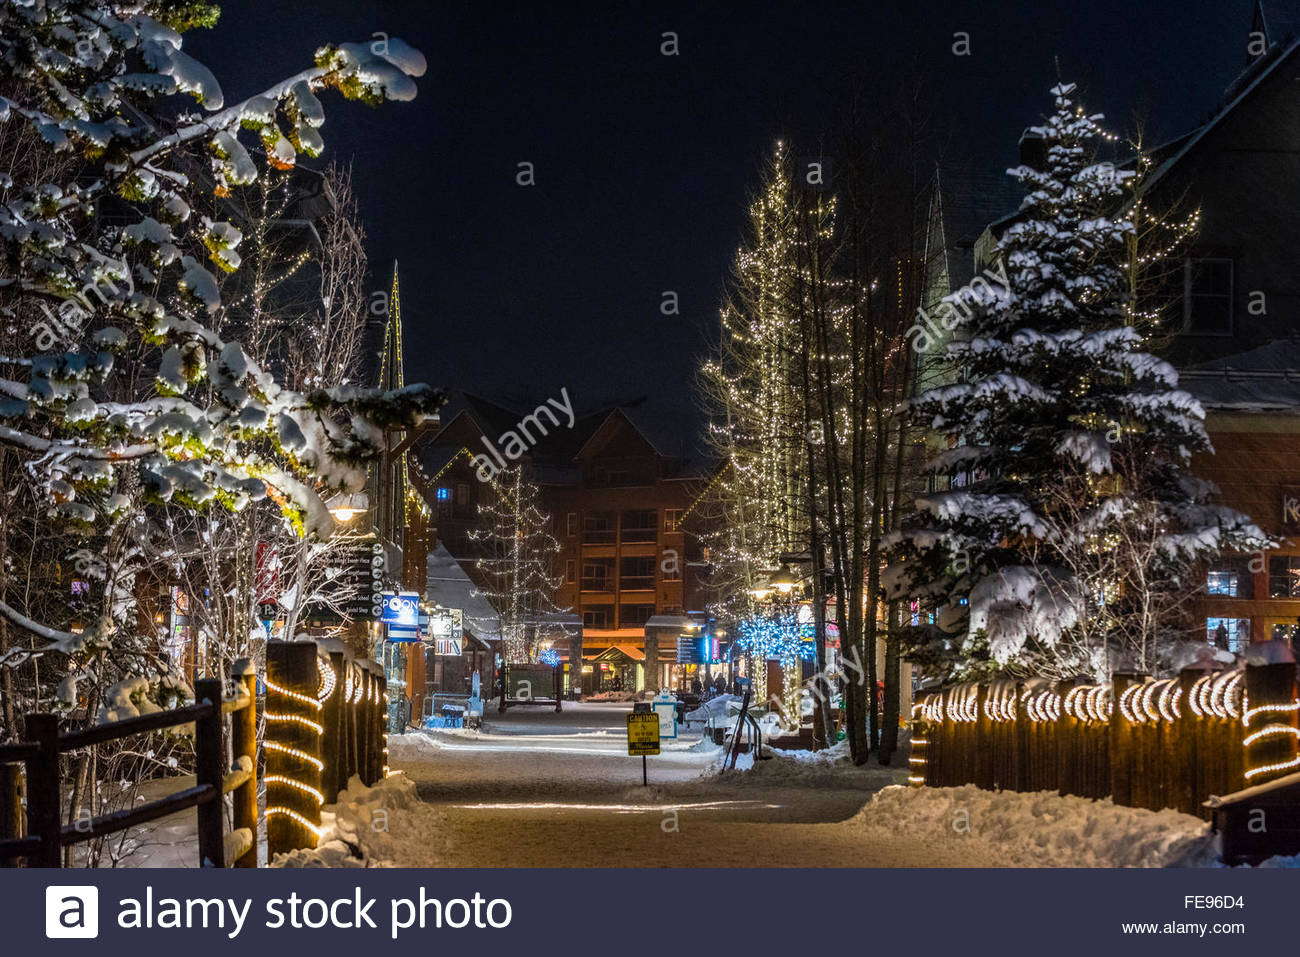 River Run Village Wahrend Der Ferien Keystone Resort Colorado Usa